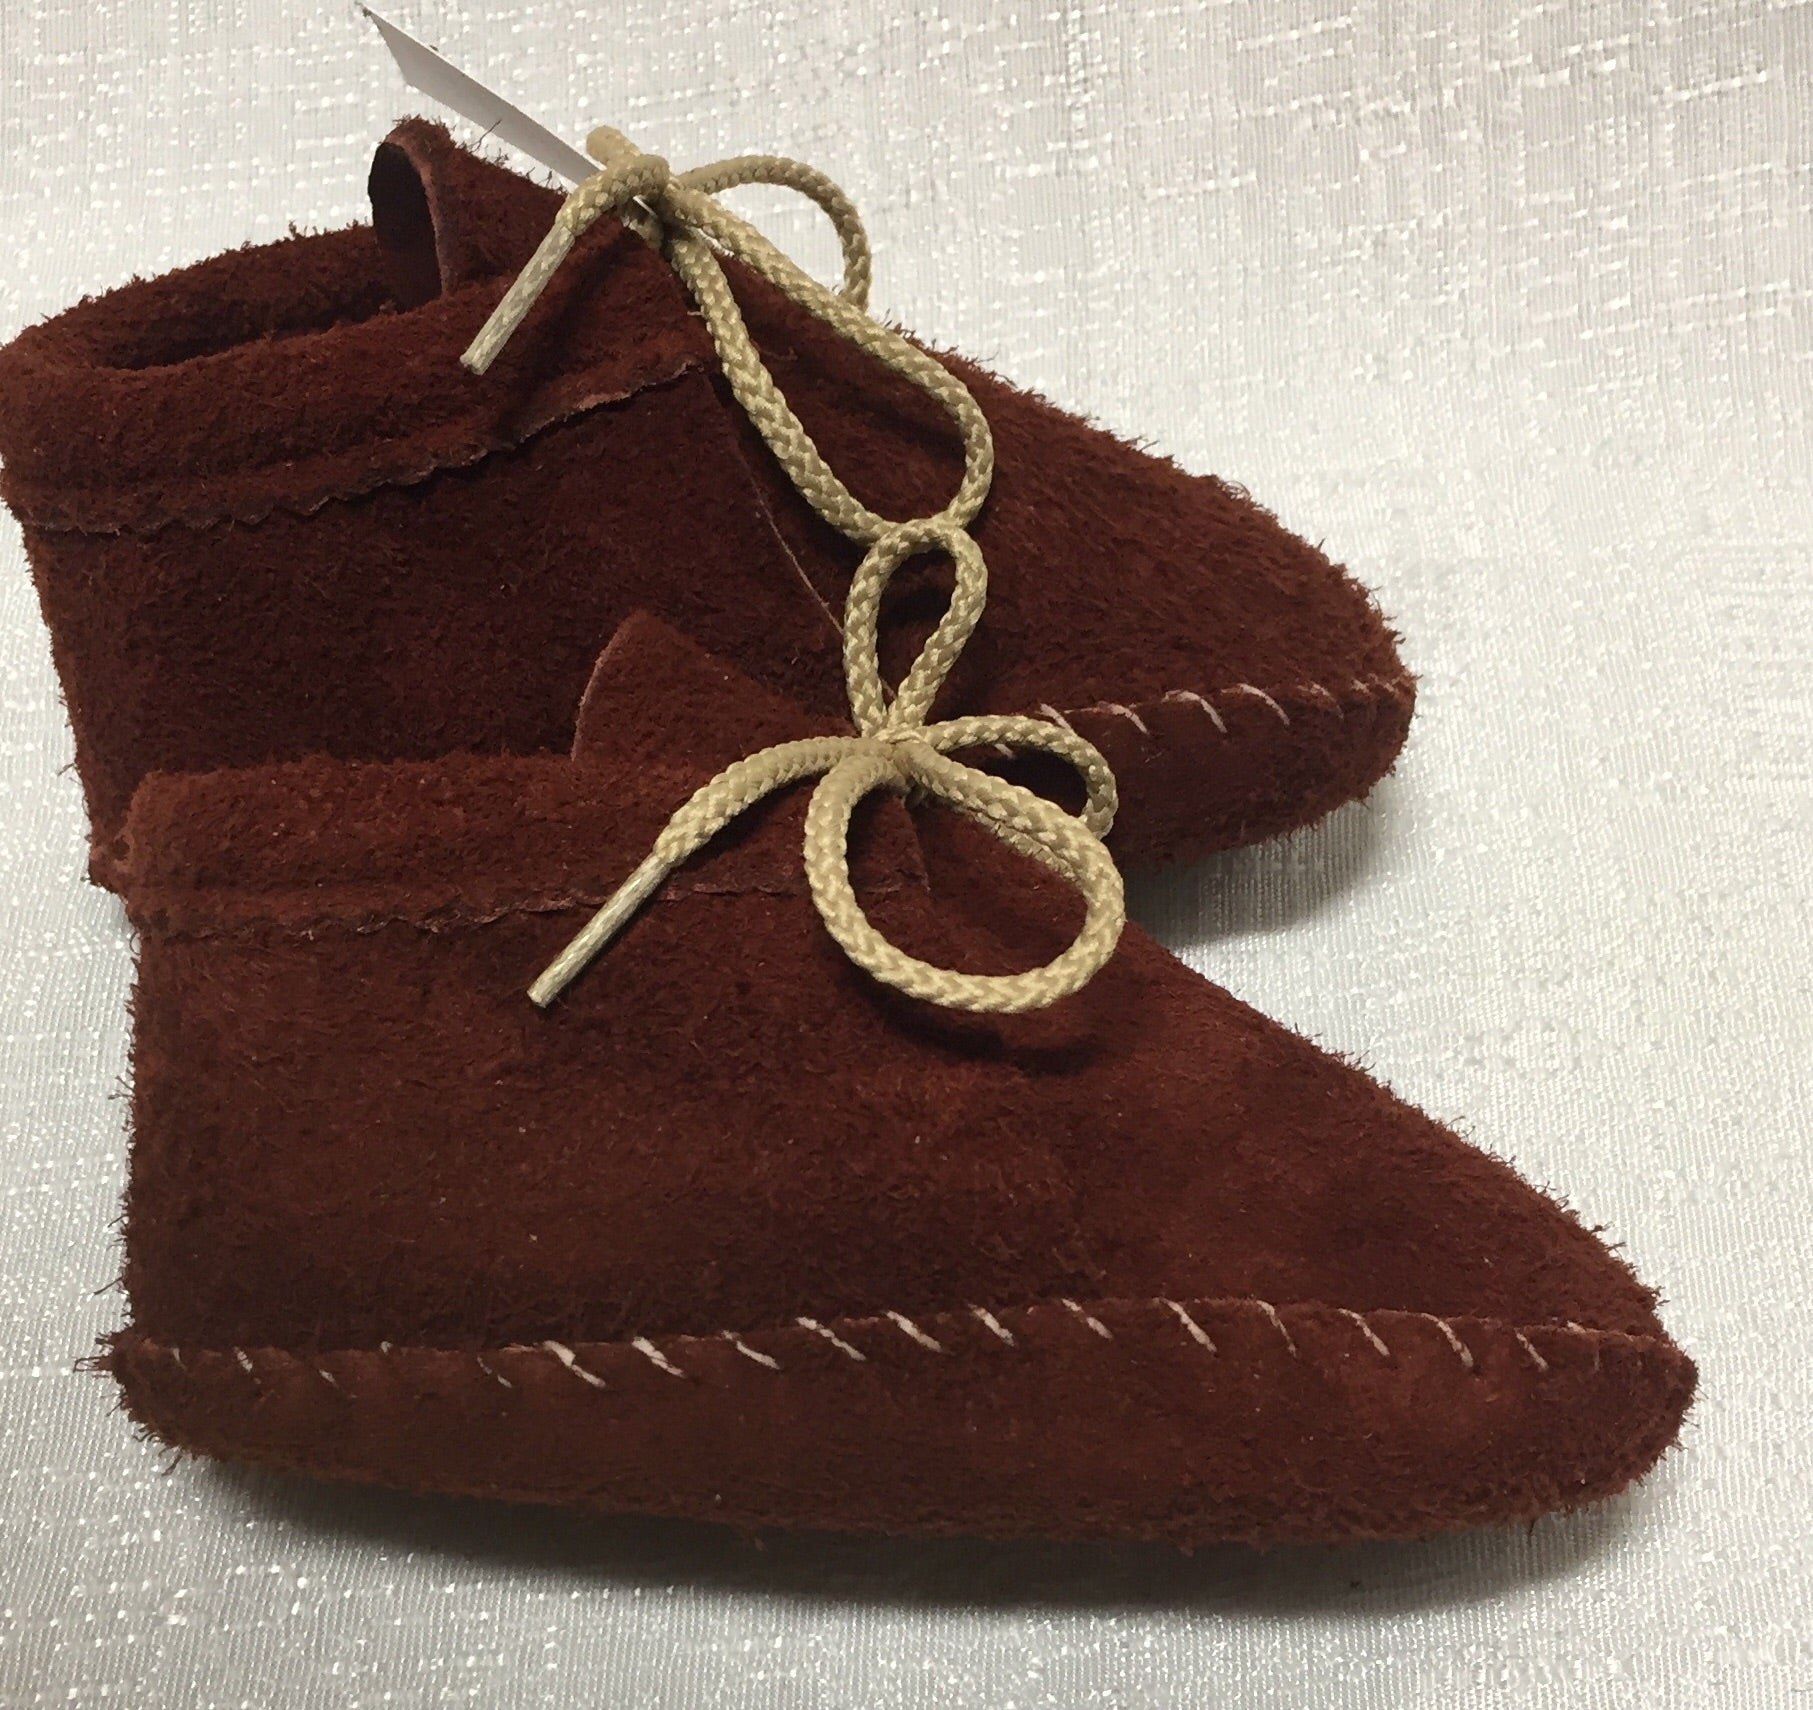 Footskins - Infant and Toddler Bison leather Booties  - $30 -$40